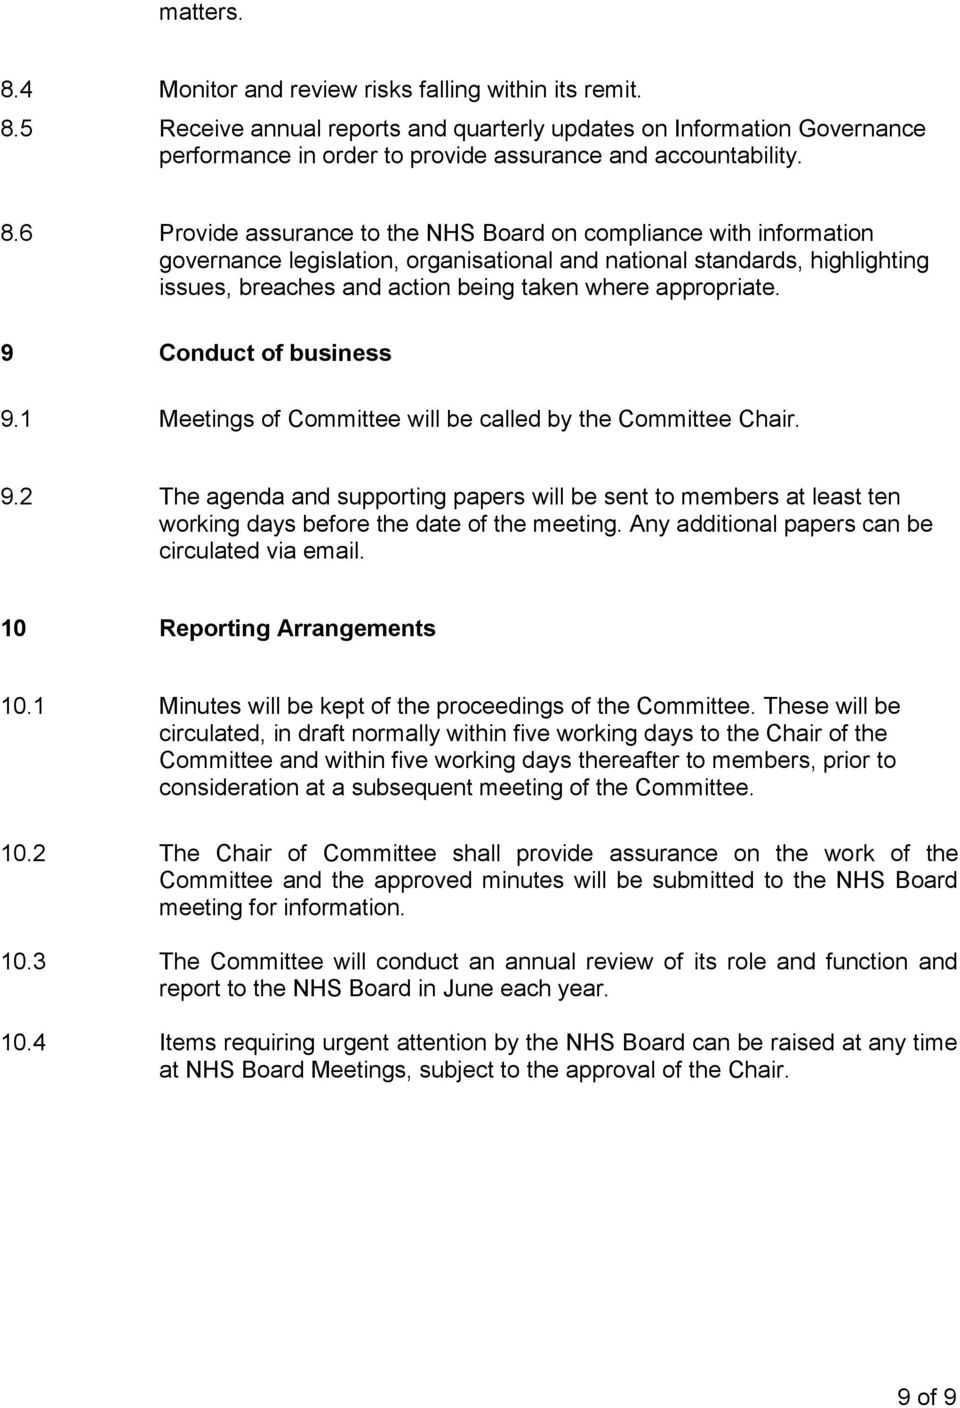 appropriate. 9 Conduct of business 9.1 Meetings of Committee will be called by the Committee Chair. 9.2 The agenda and supporting papers will be sent to members at least ten working days before the date of the meeting.